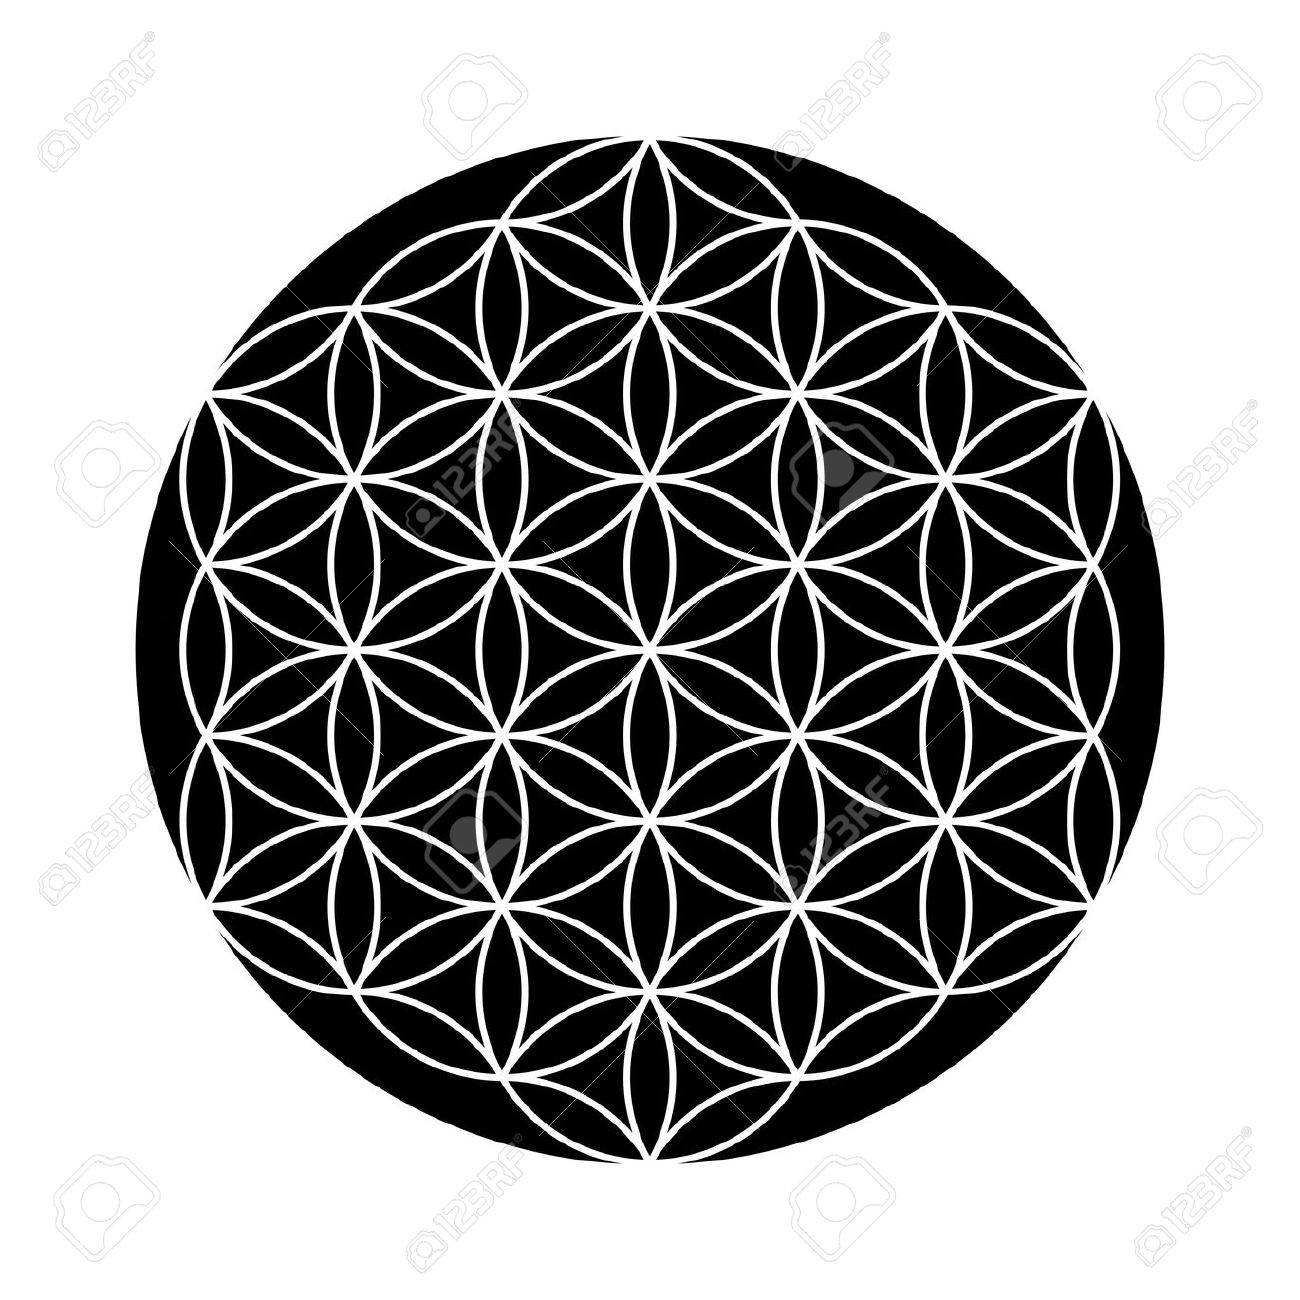 Flower Of Life Symbol Black And White Stock Photo Picture And